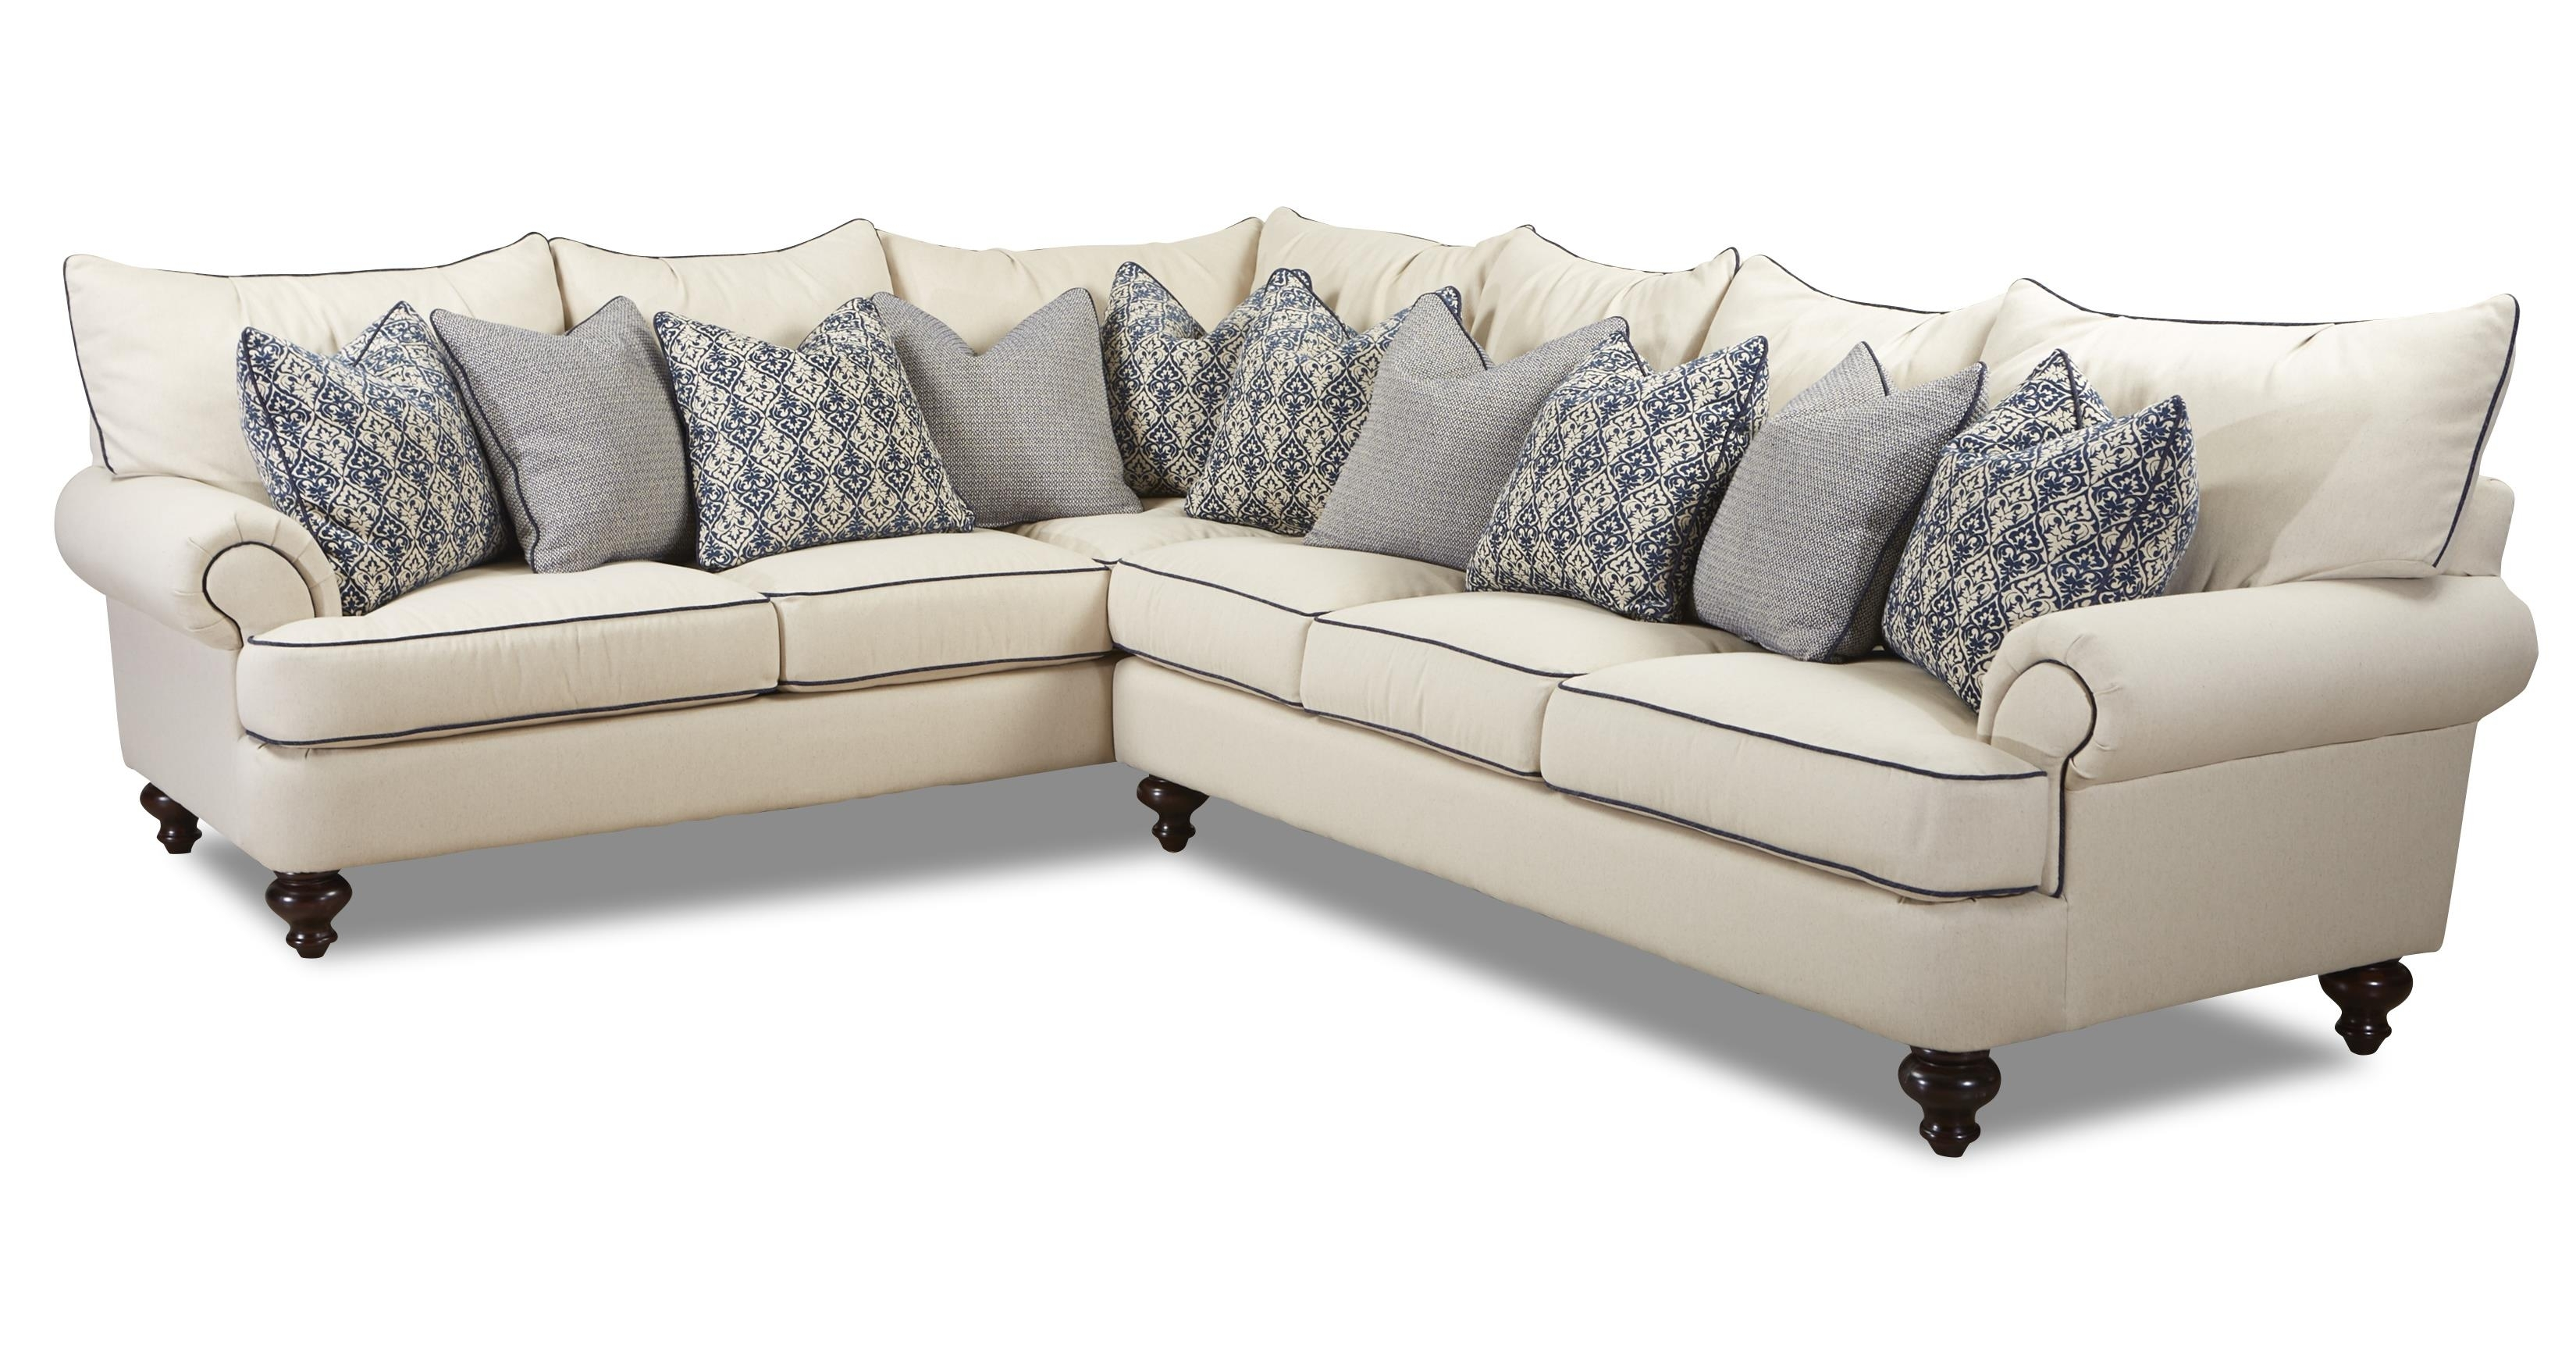 Shabby Chic Sectional Sofaklaussner | Wolf And Gardiner Wolf For Gardiners Sectional Sofas (Image 9 of 10)